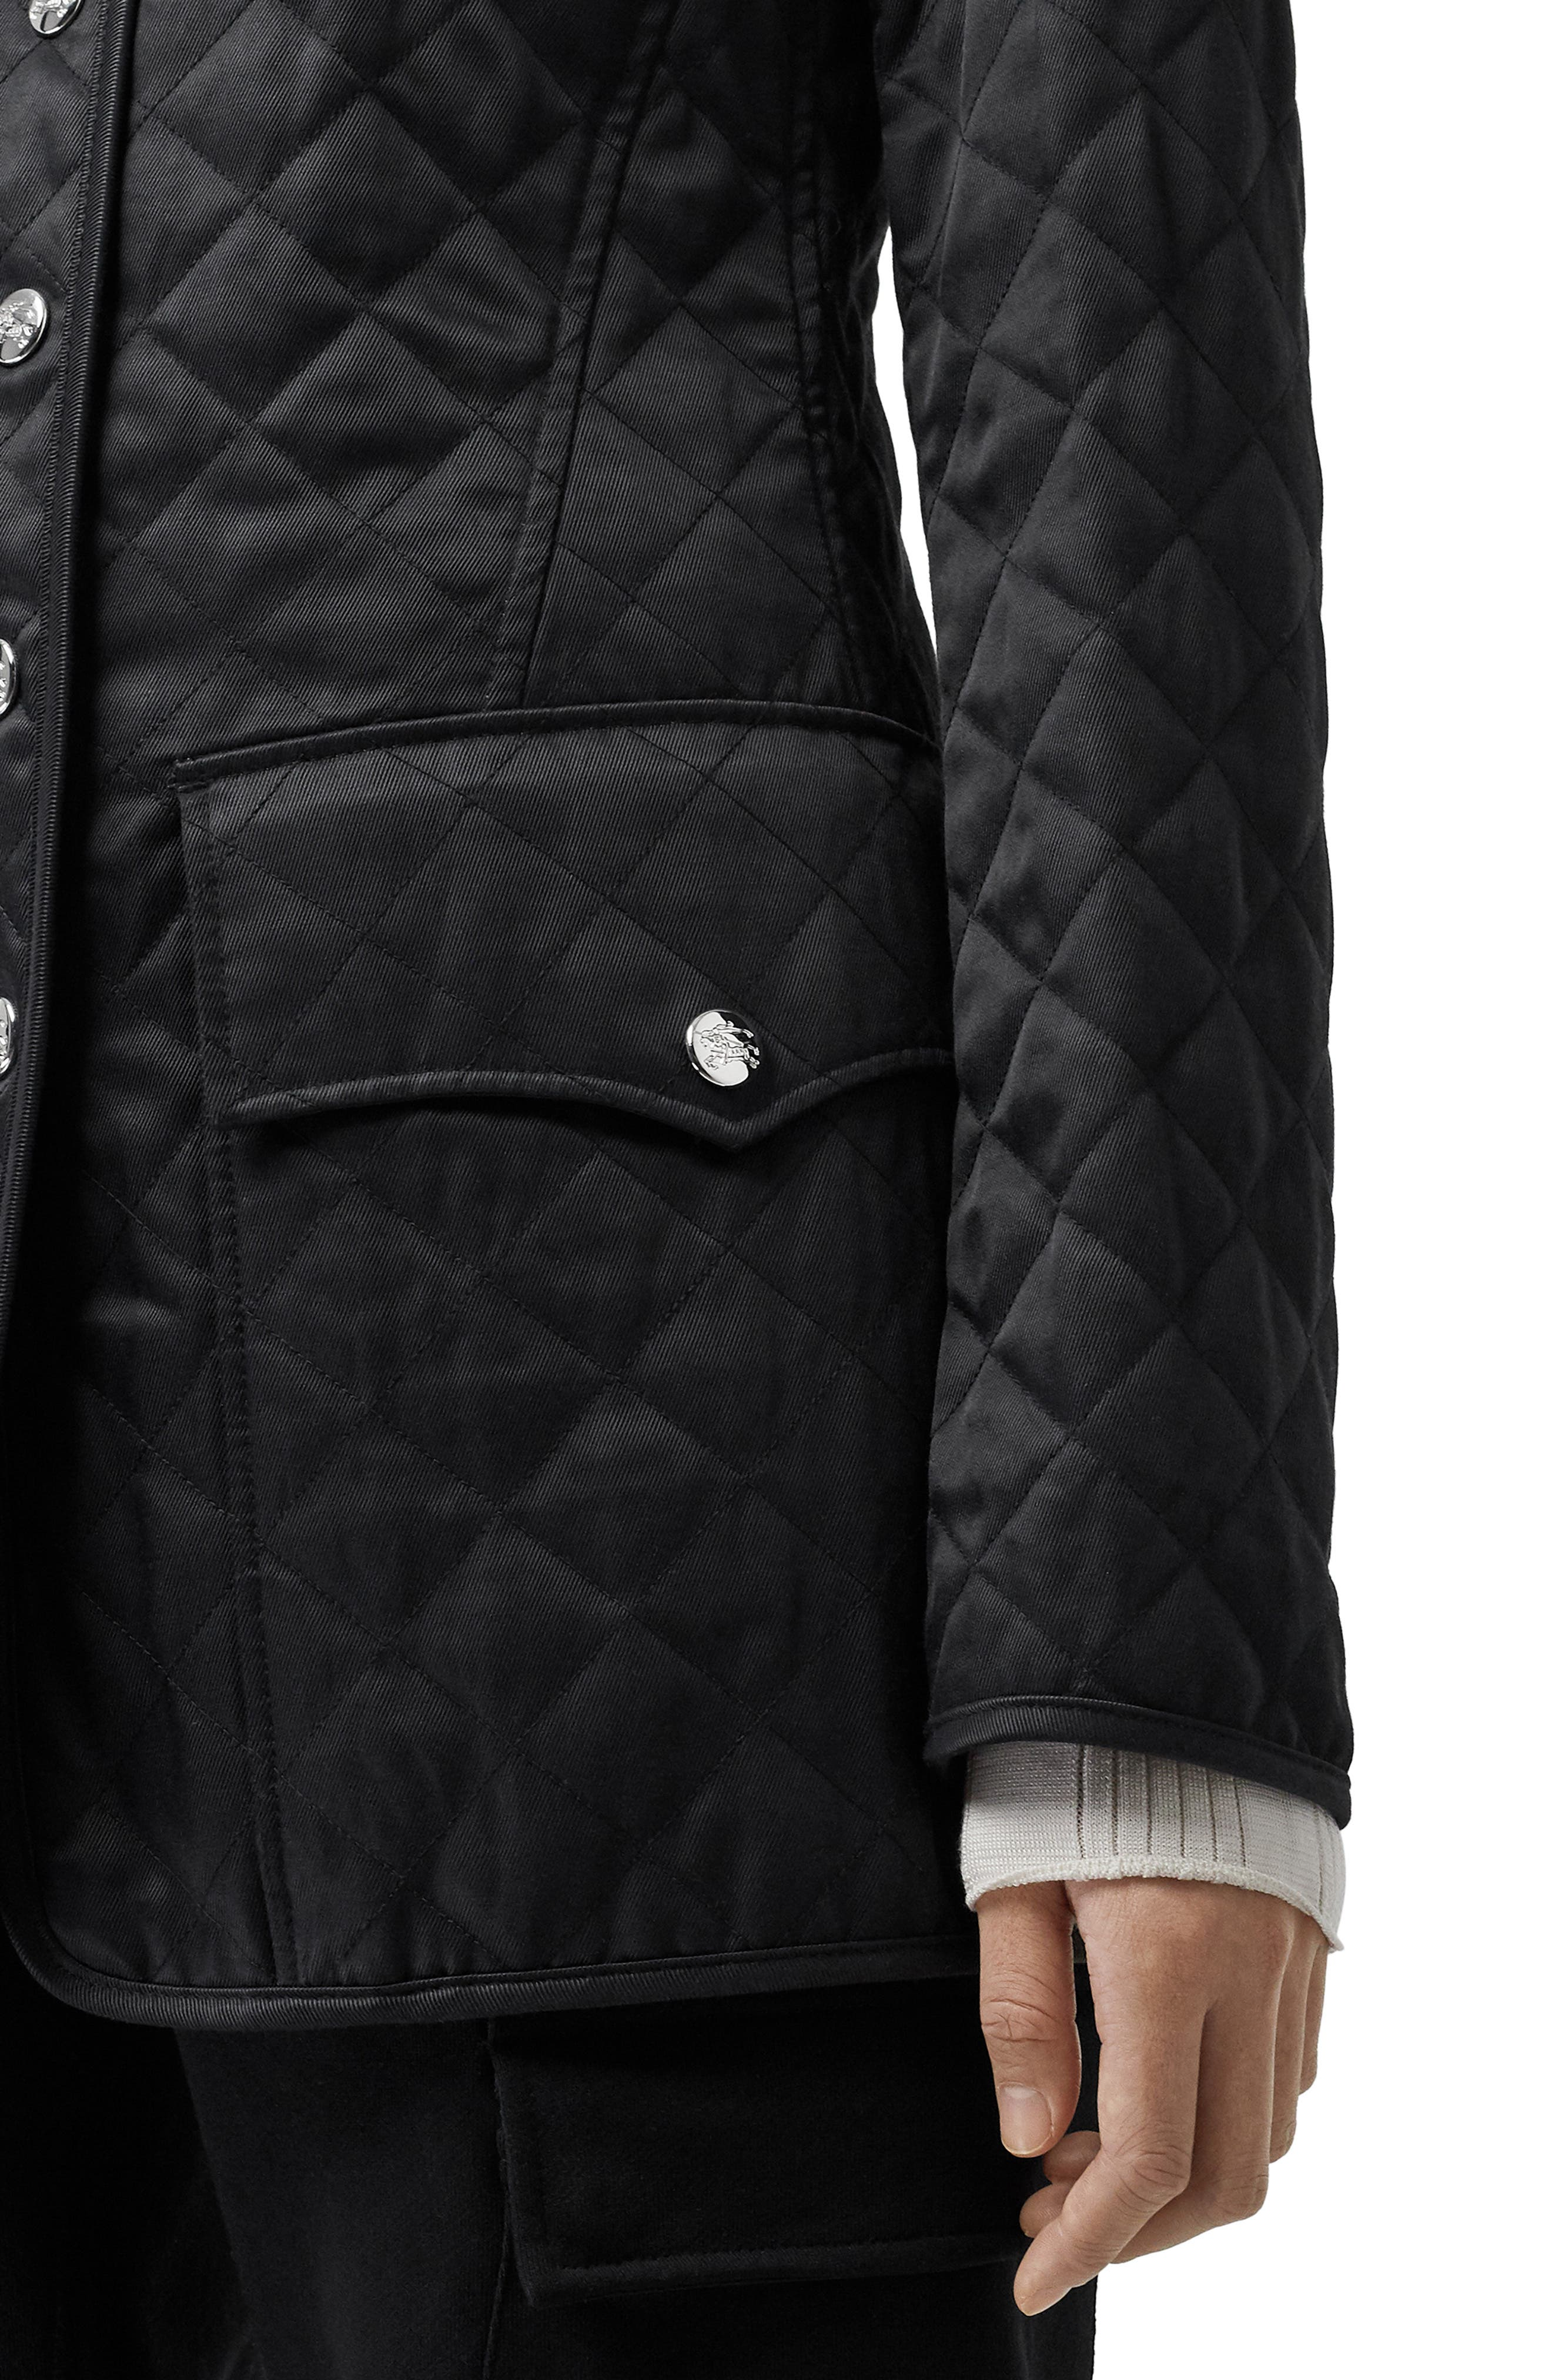 BURBERRY,                             Borthwicke Quilted Jacket,                             Alternate thumbnail 4, color,                             BLACK